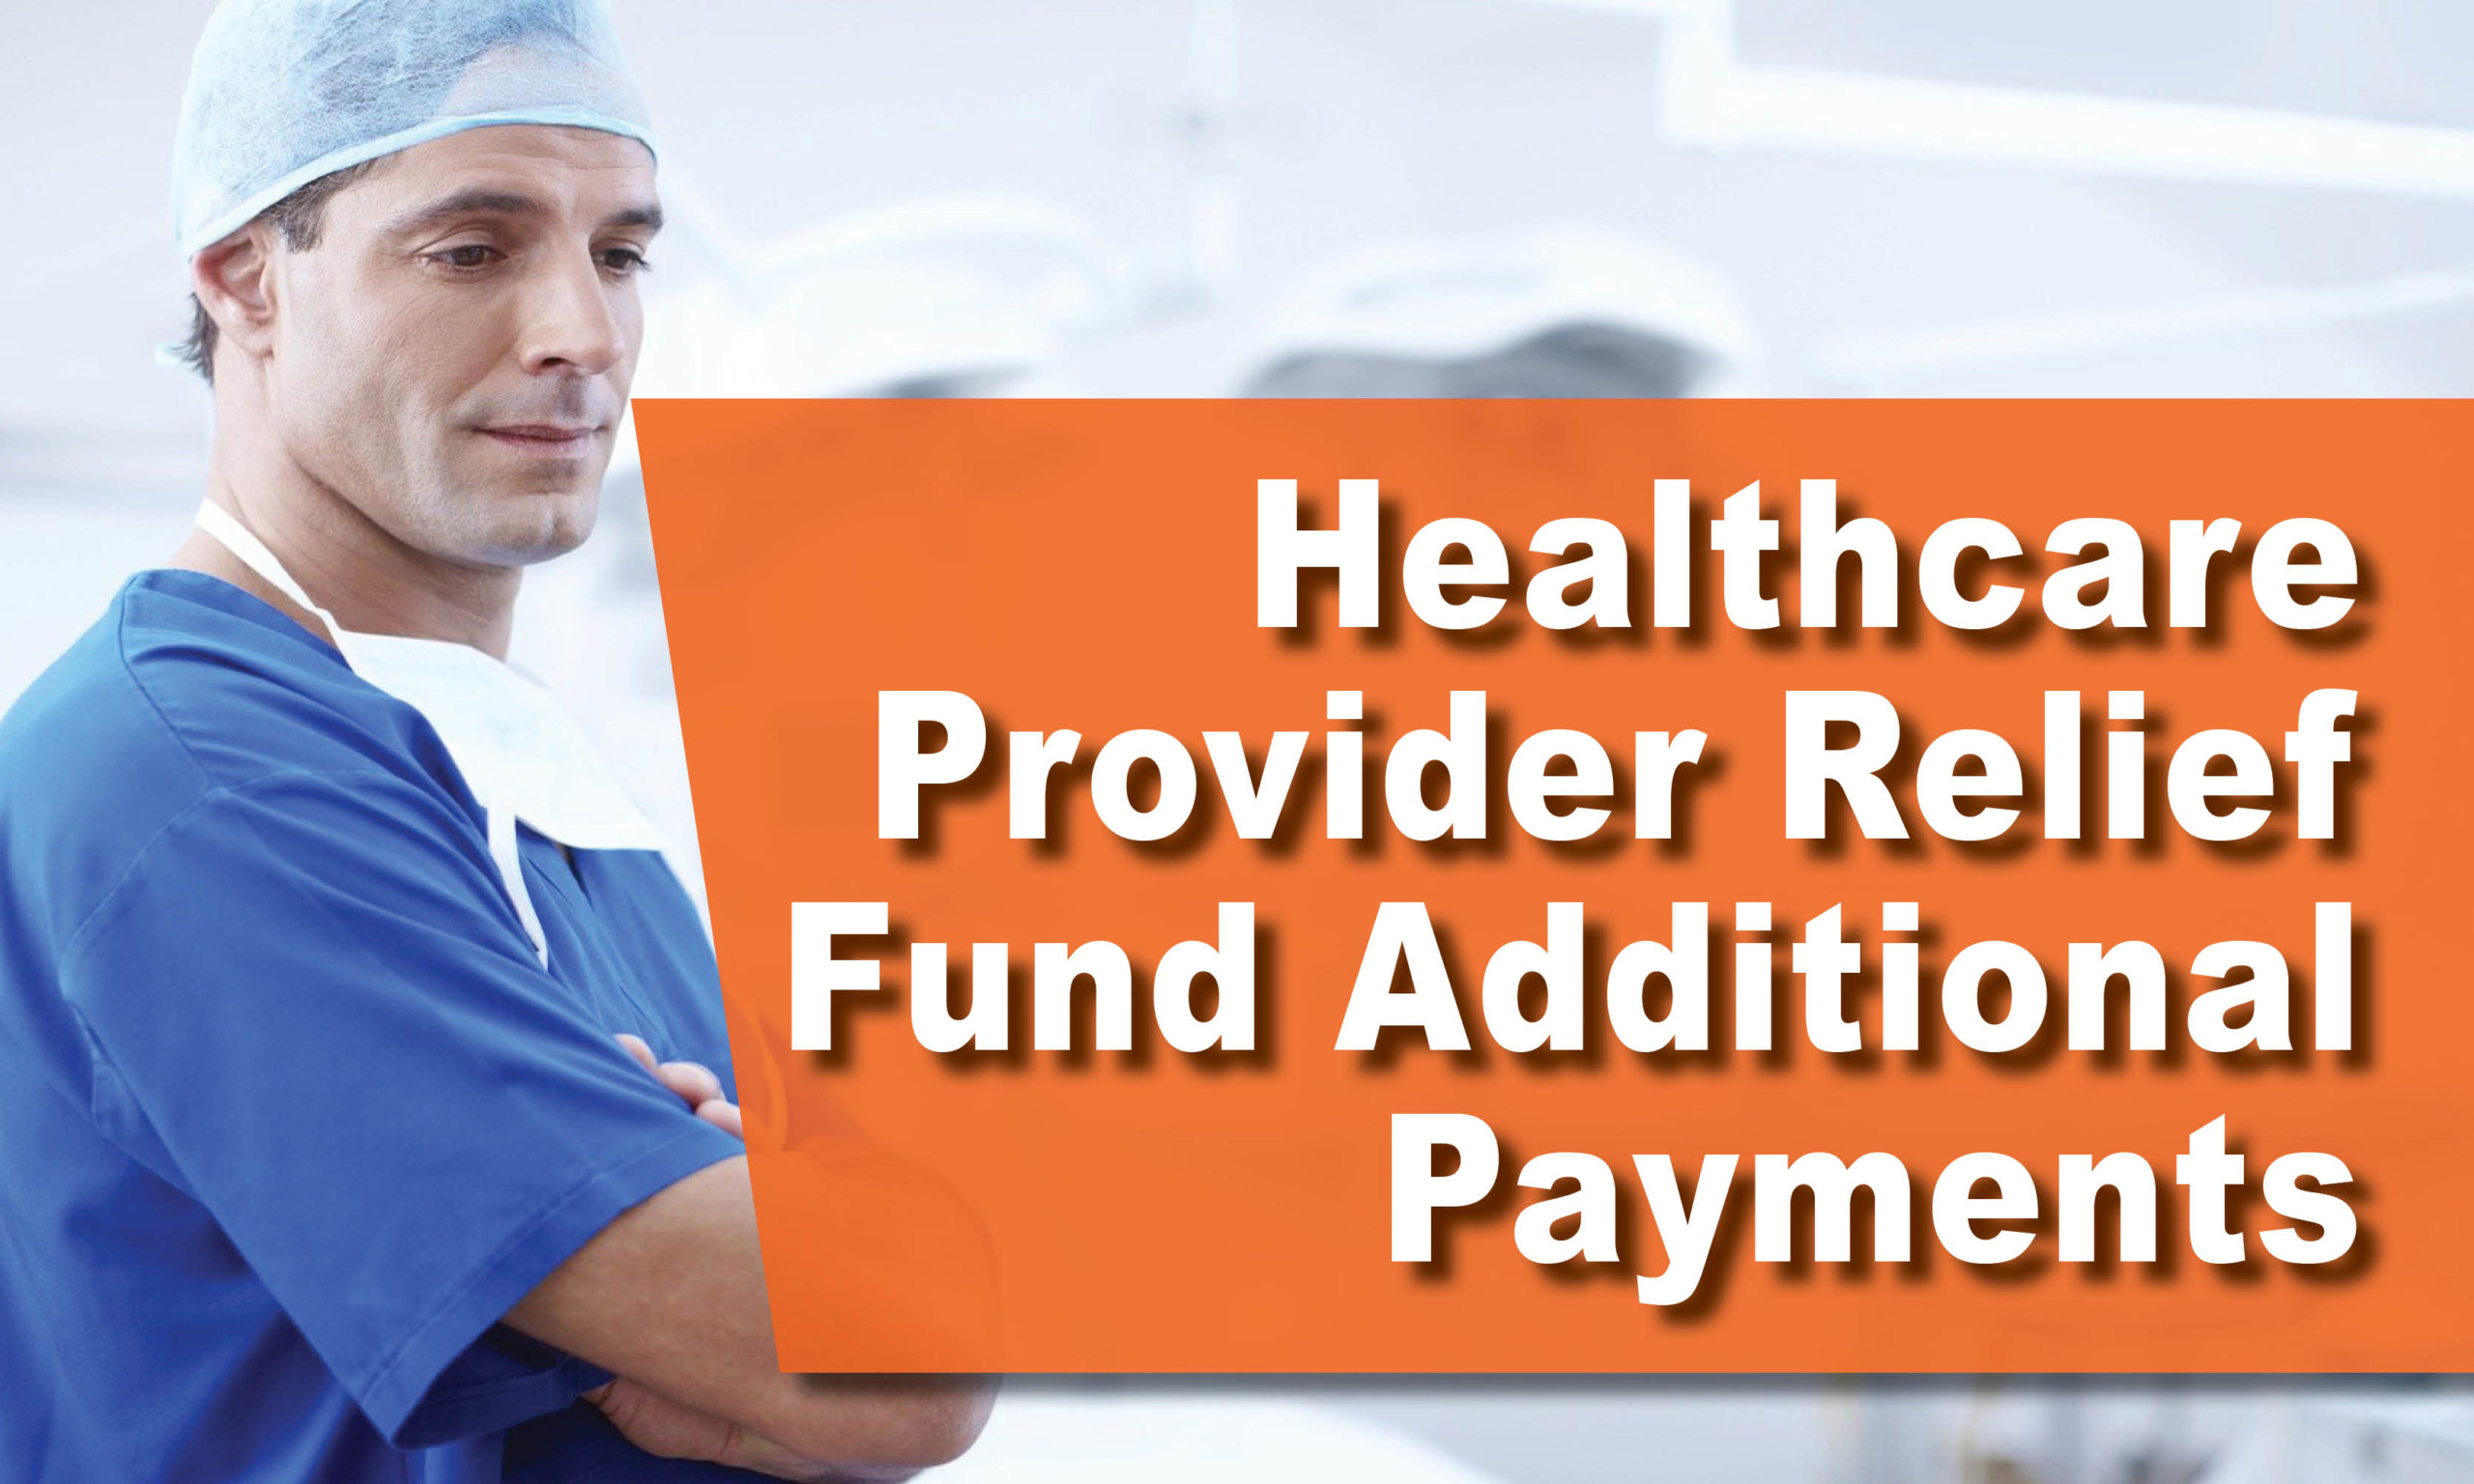 Healthcare Provider Relief Fund Additional Payments